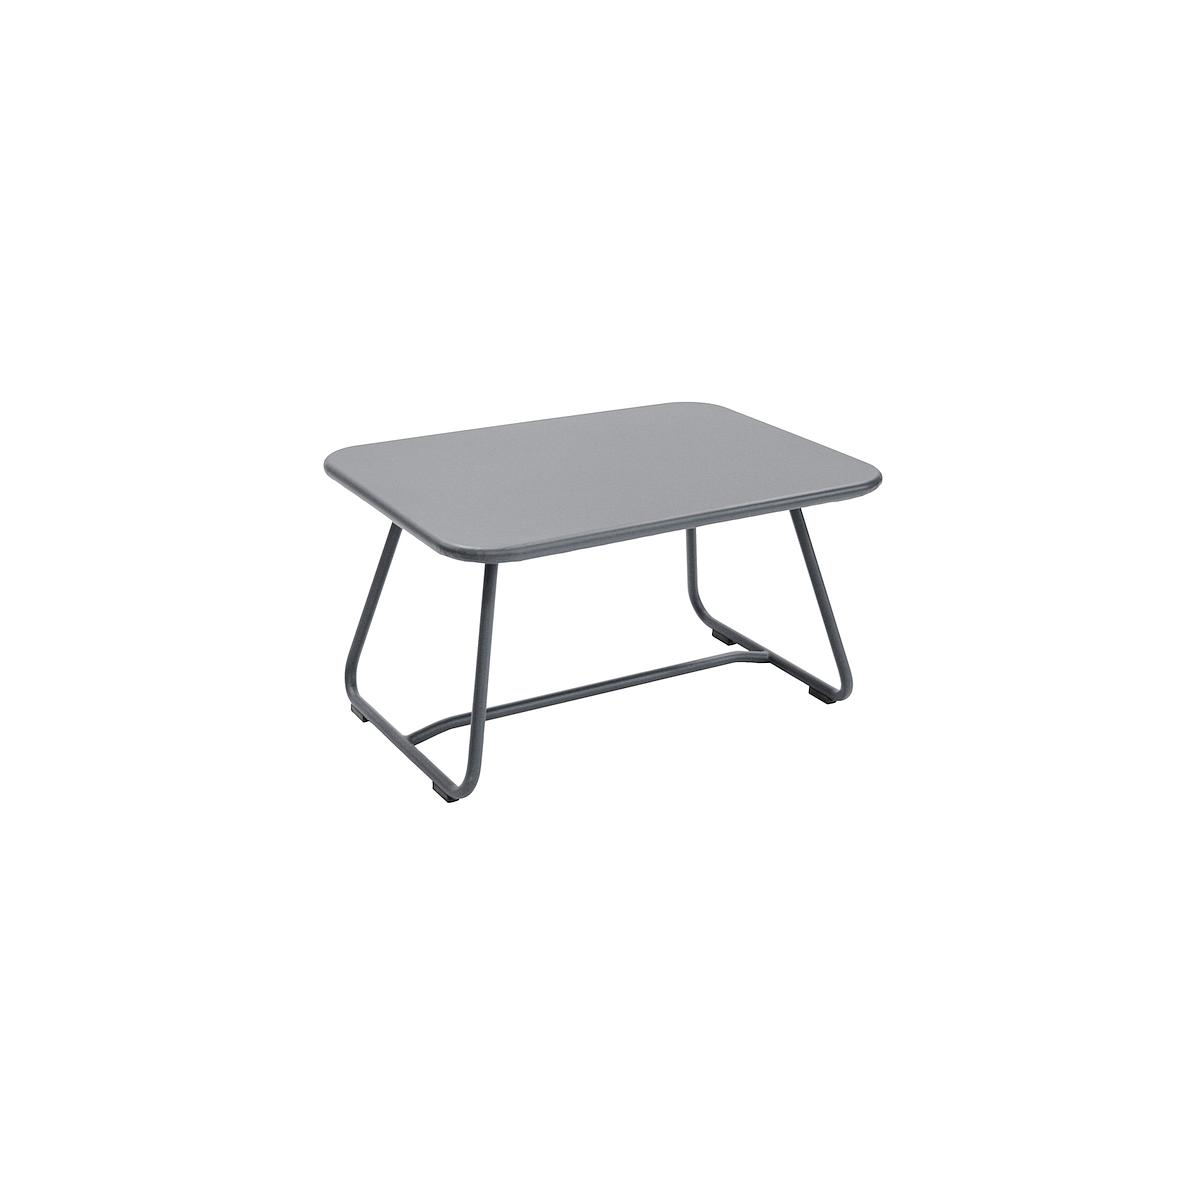 SIXTIES by Fermob Table basse Gris orage